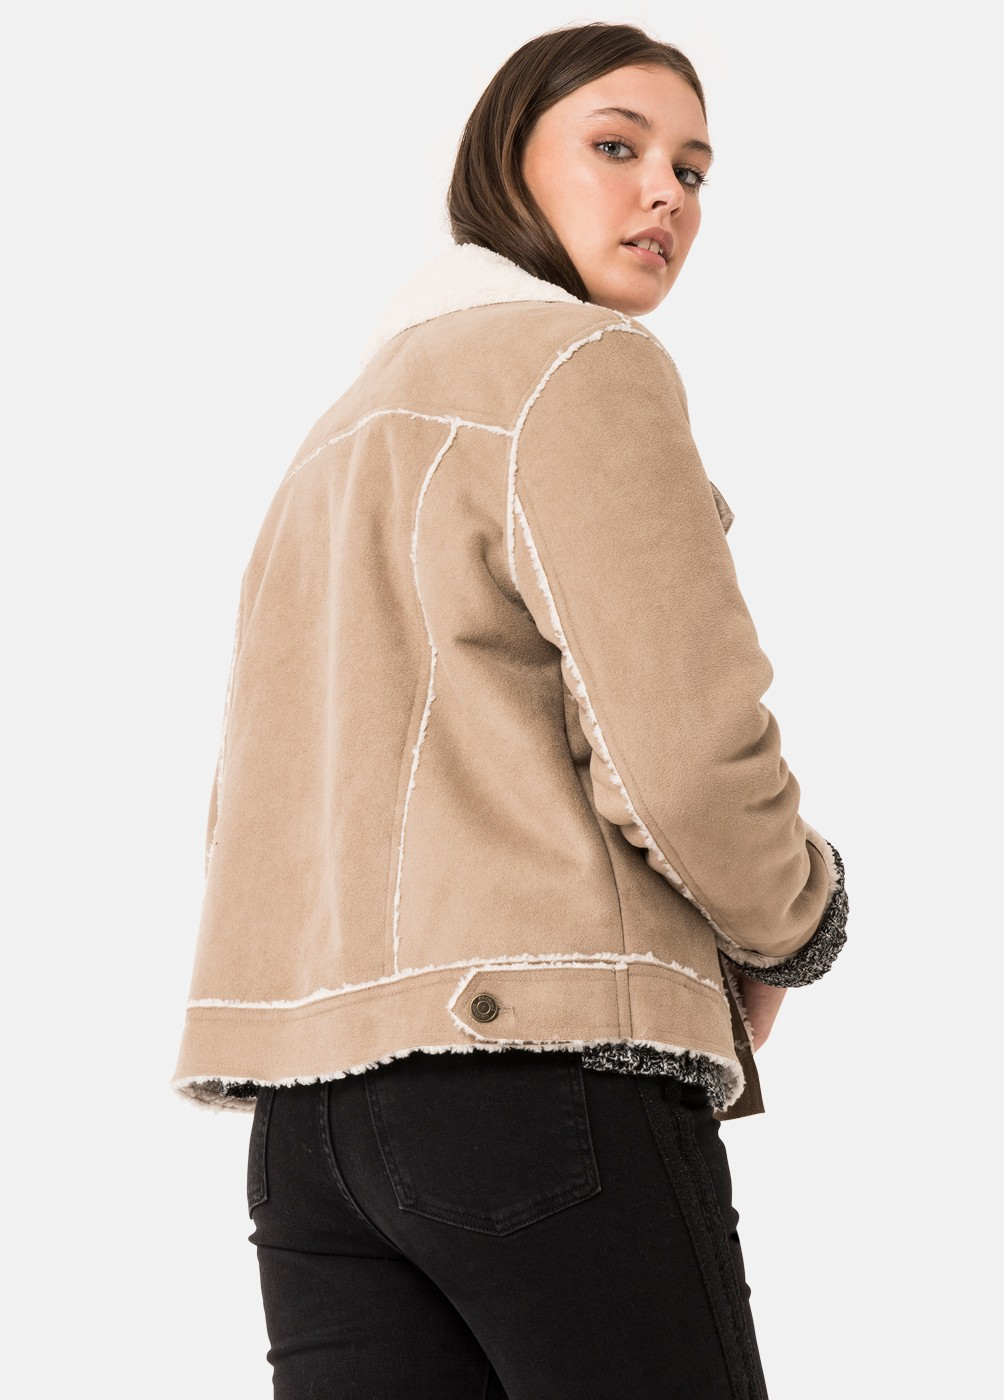 CERLER DOUBLE BREASTED JACKET